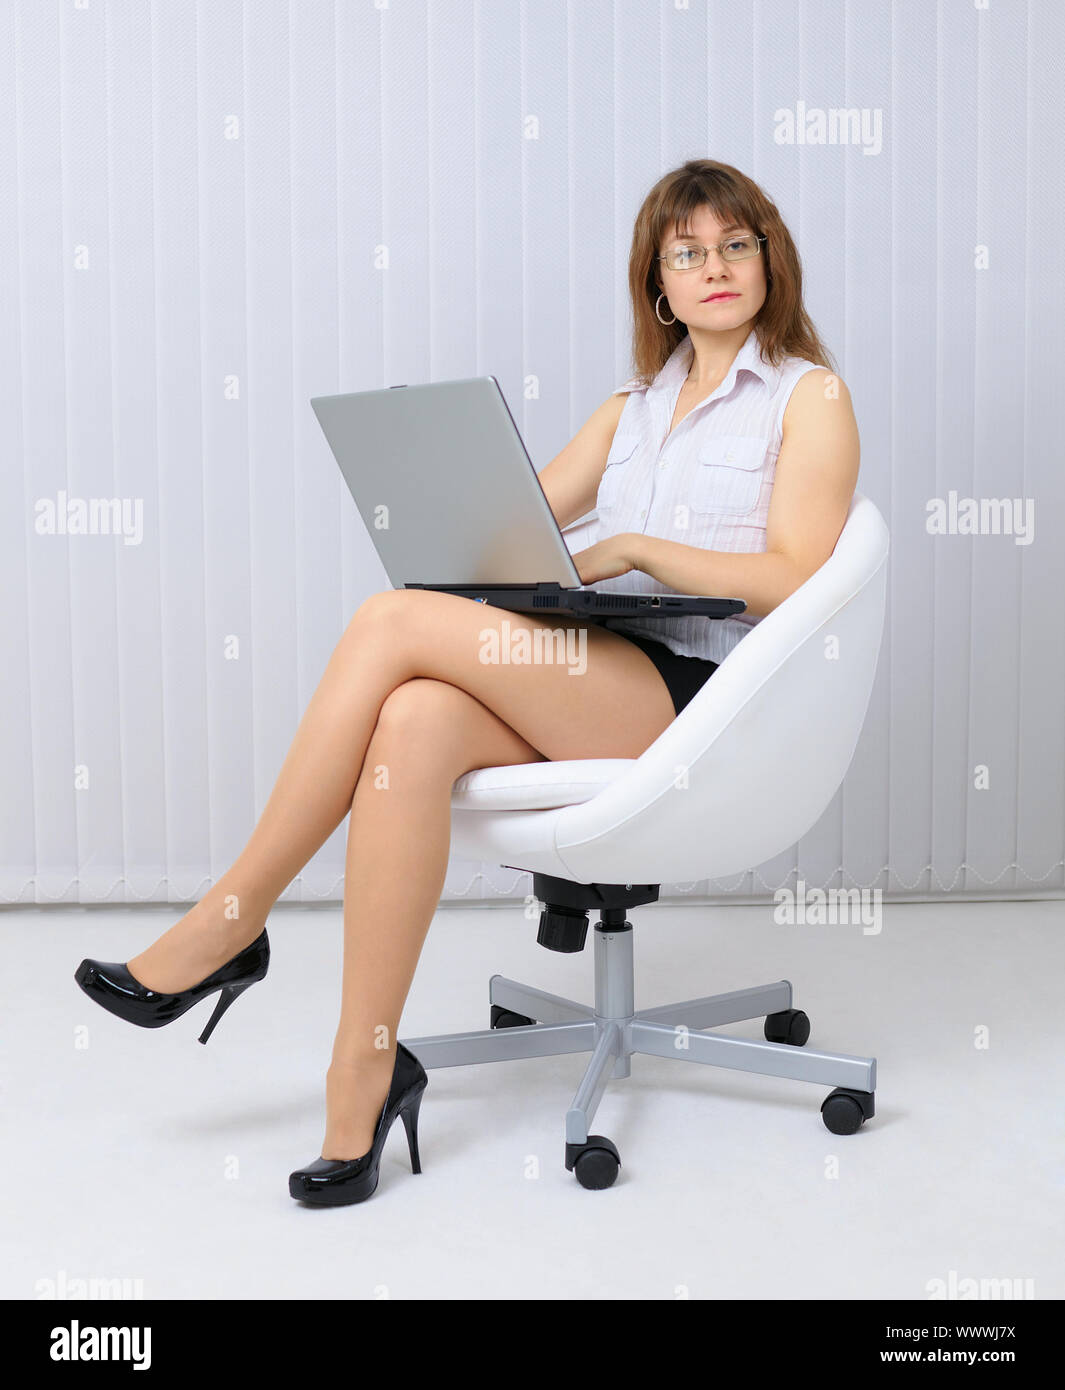 Very serious, beautiful young woman sitting in a white chair with laptop Stock Photo